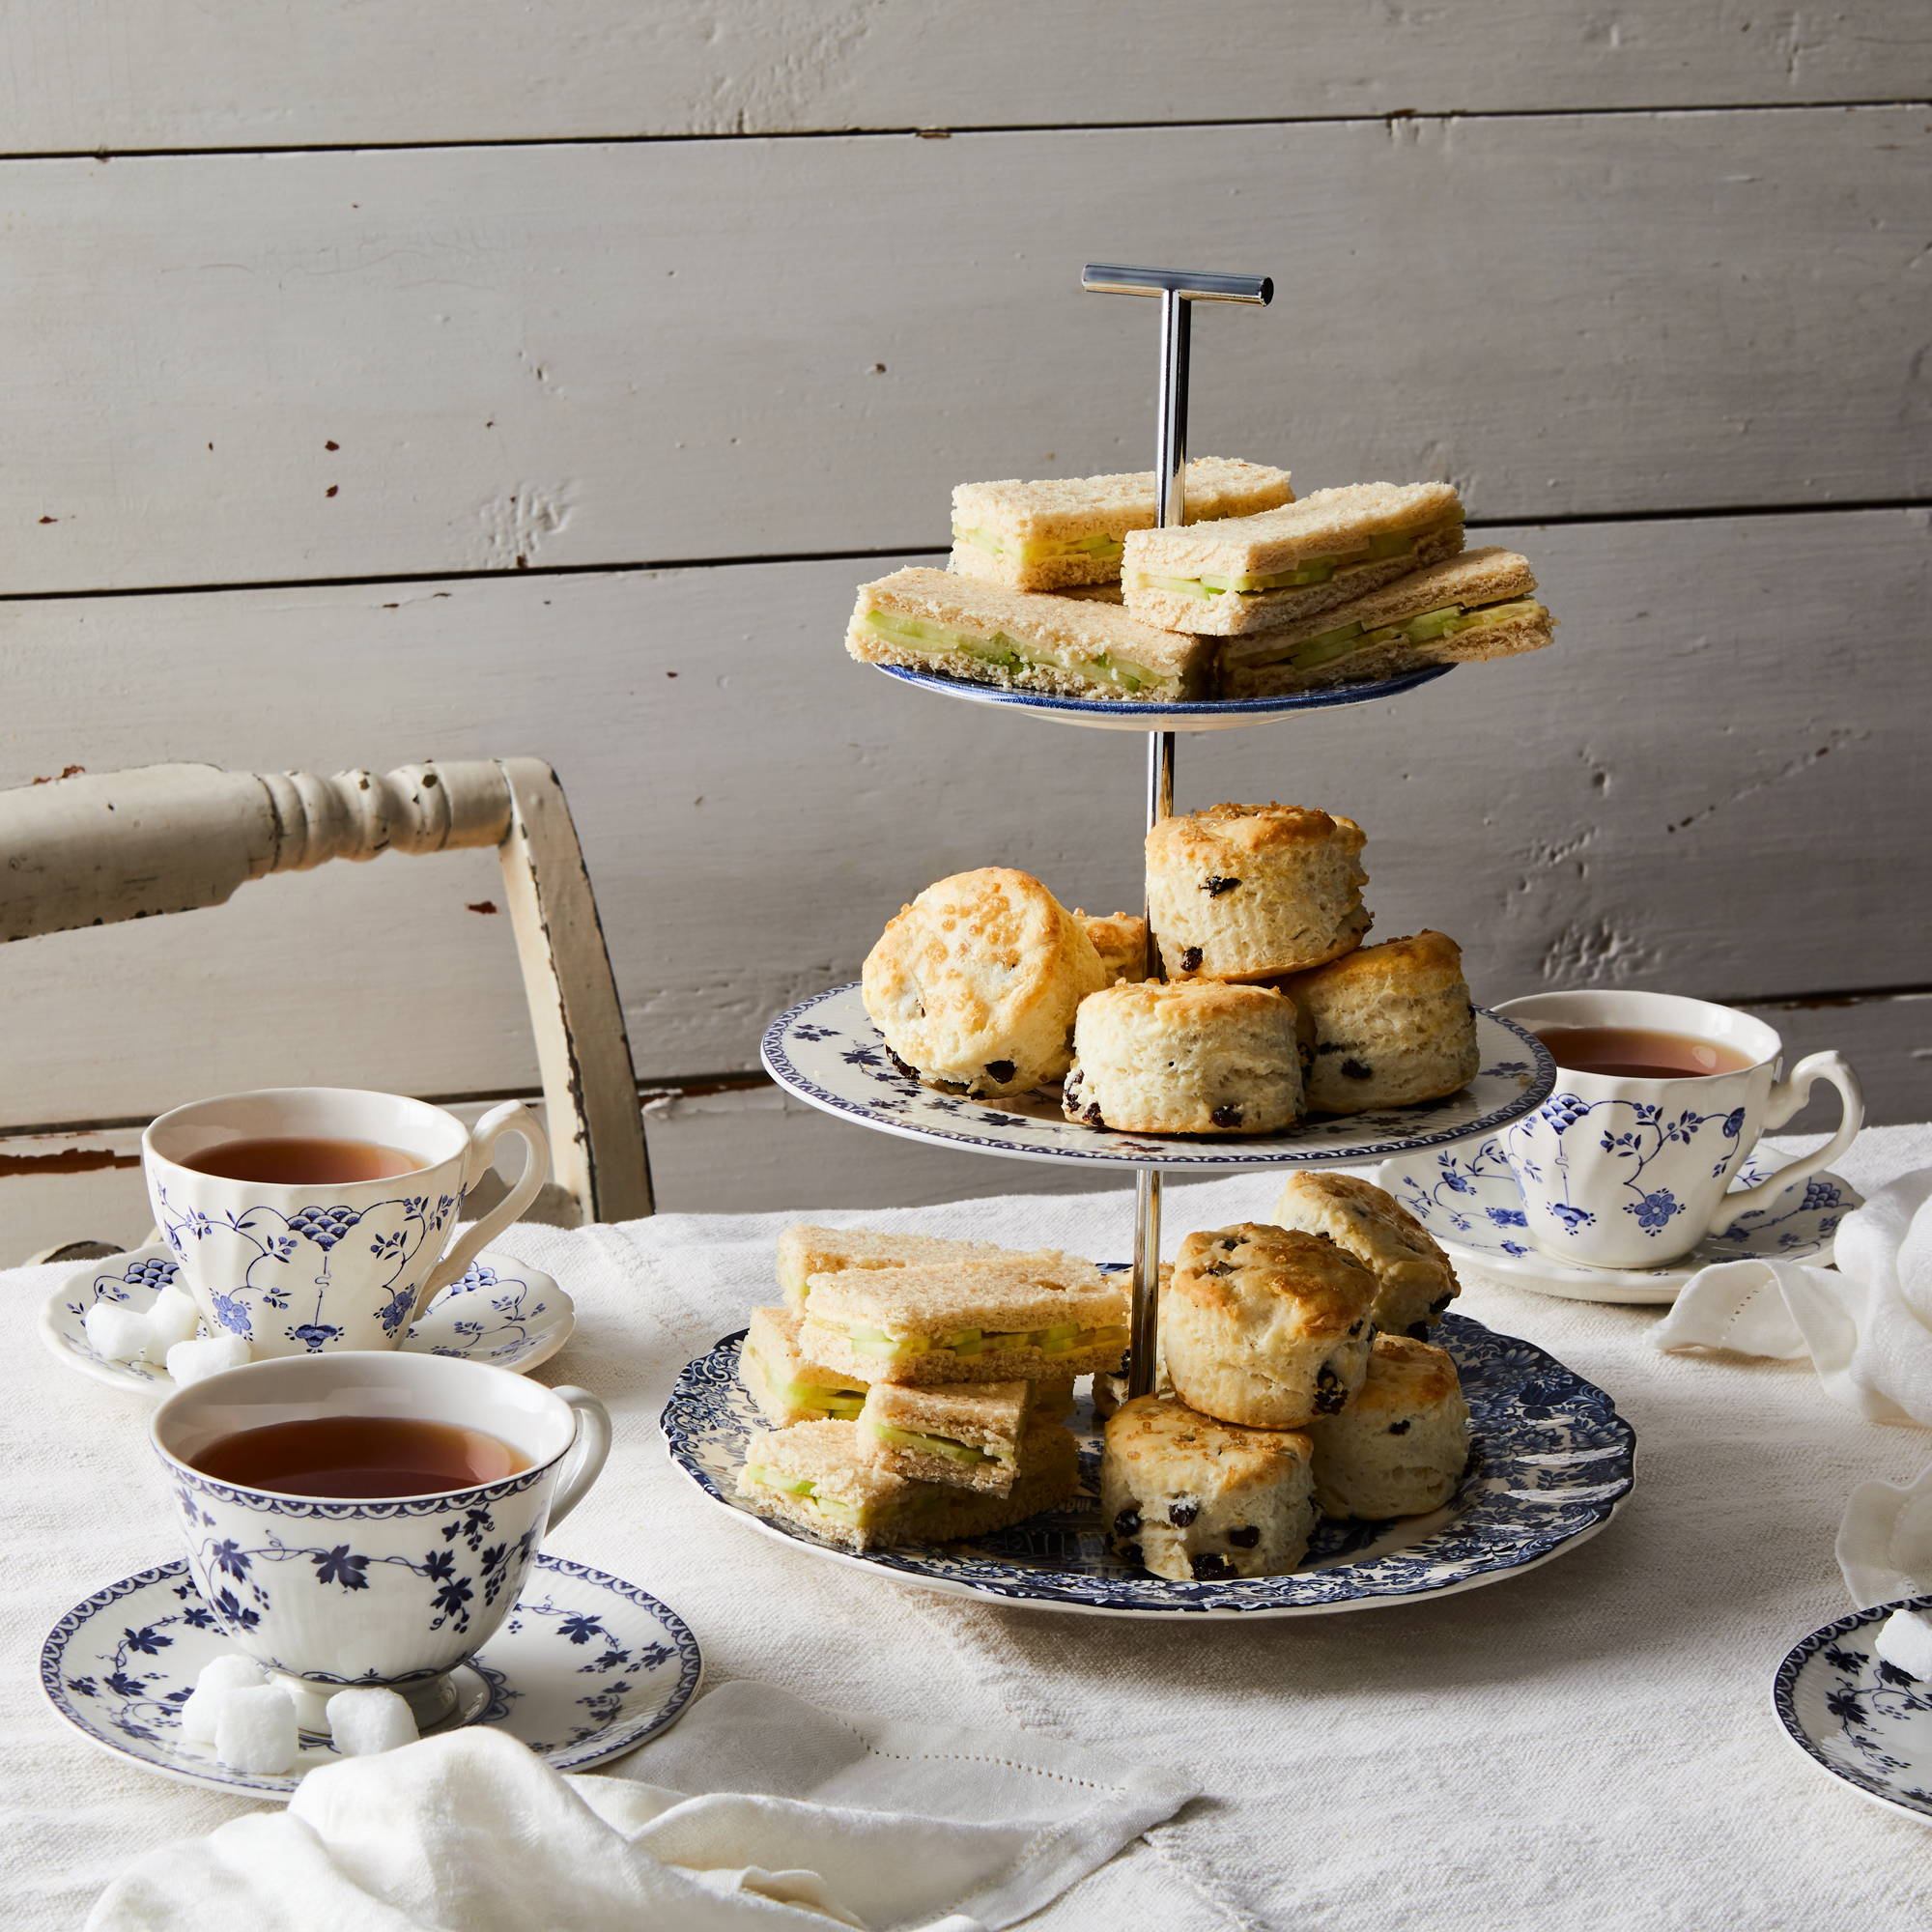 3-Tier cake stand with blue and white china piled high with tea sandwiches and biscuits plus teacups & saucers